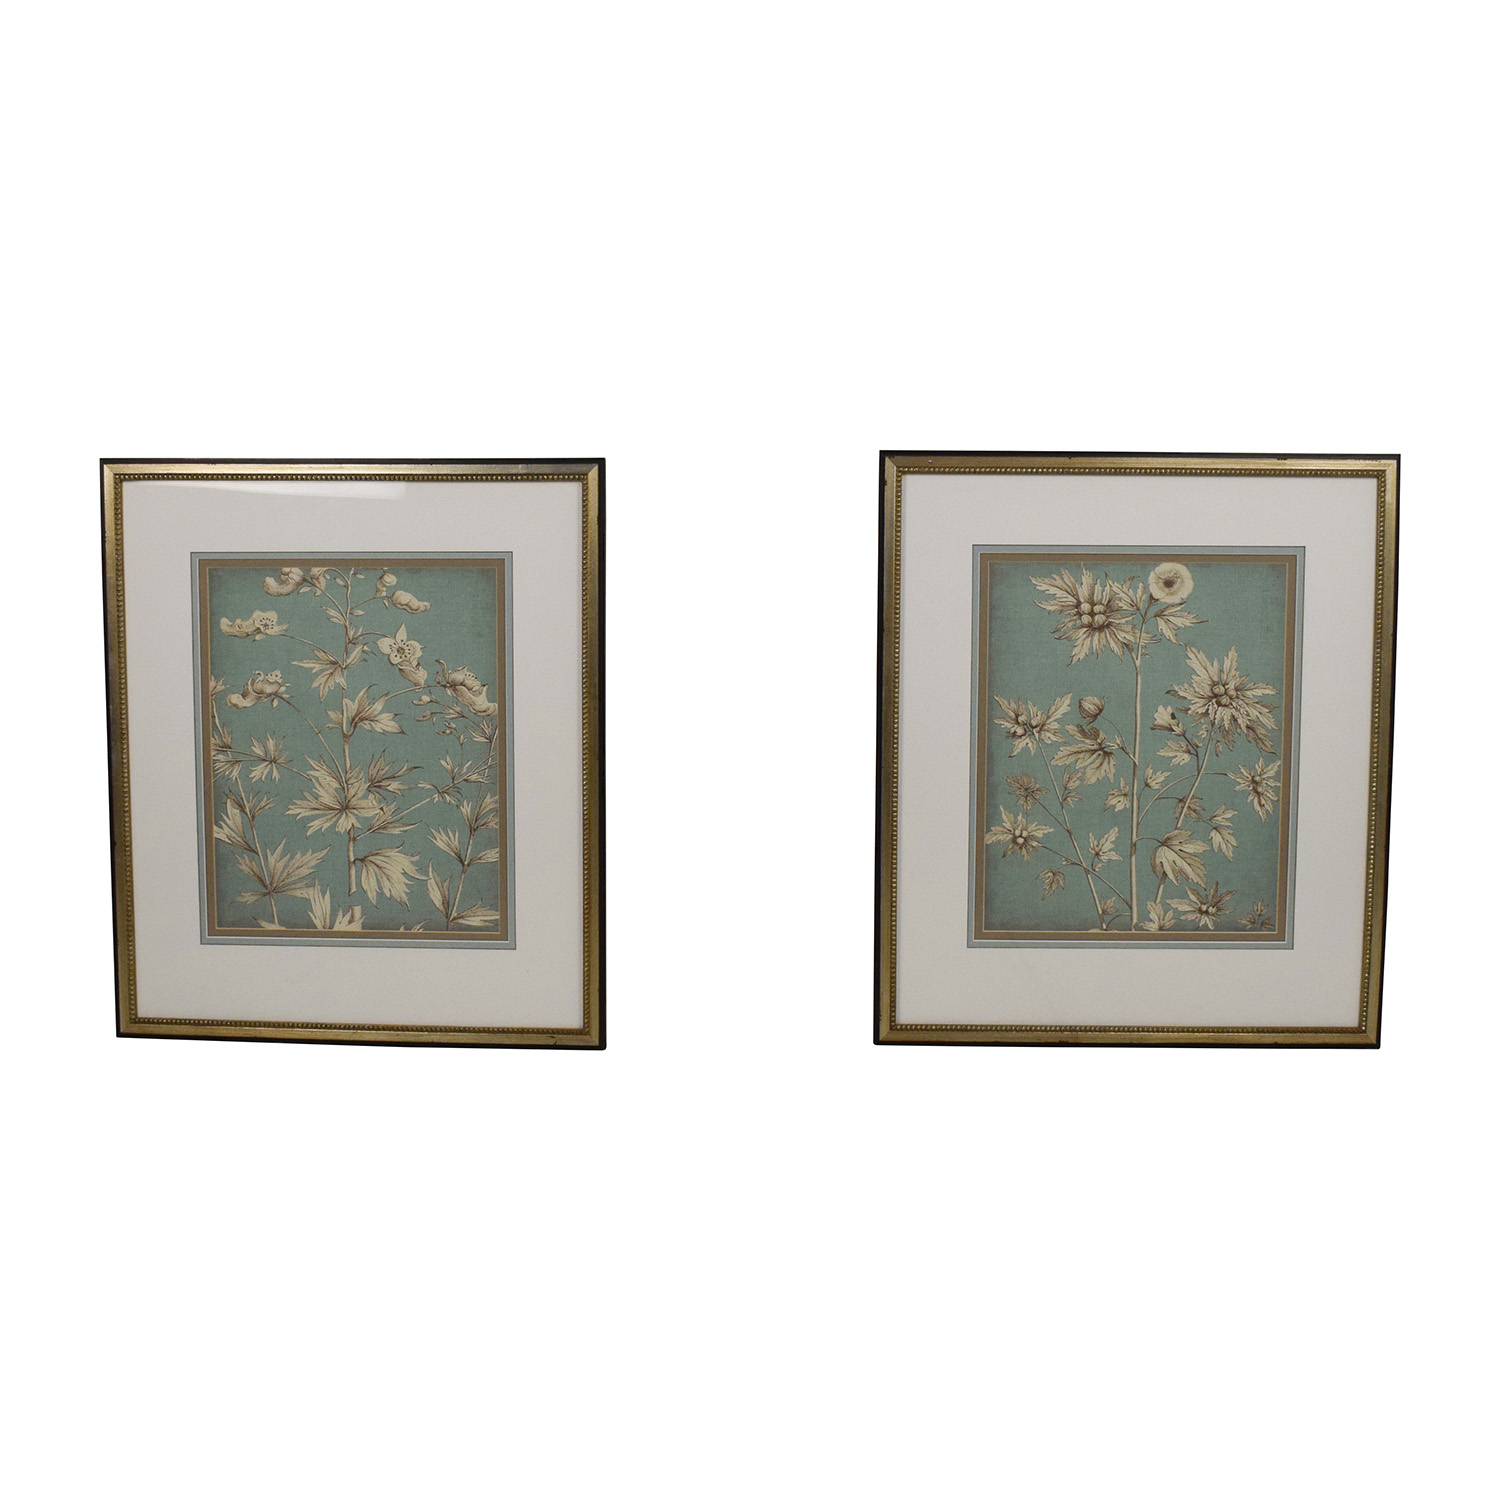 buy Ethan Allen Ethan Allen Pair of Decorative Floral Pictures online